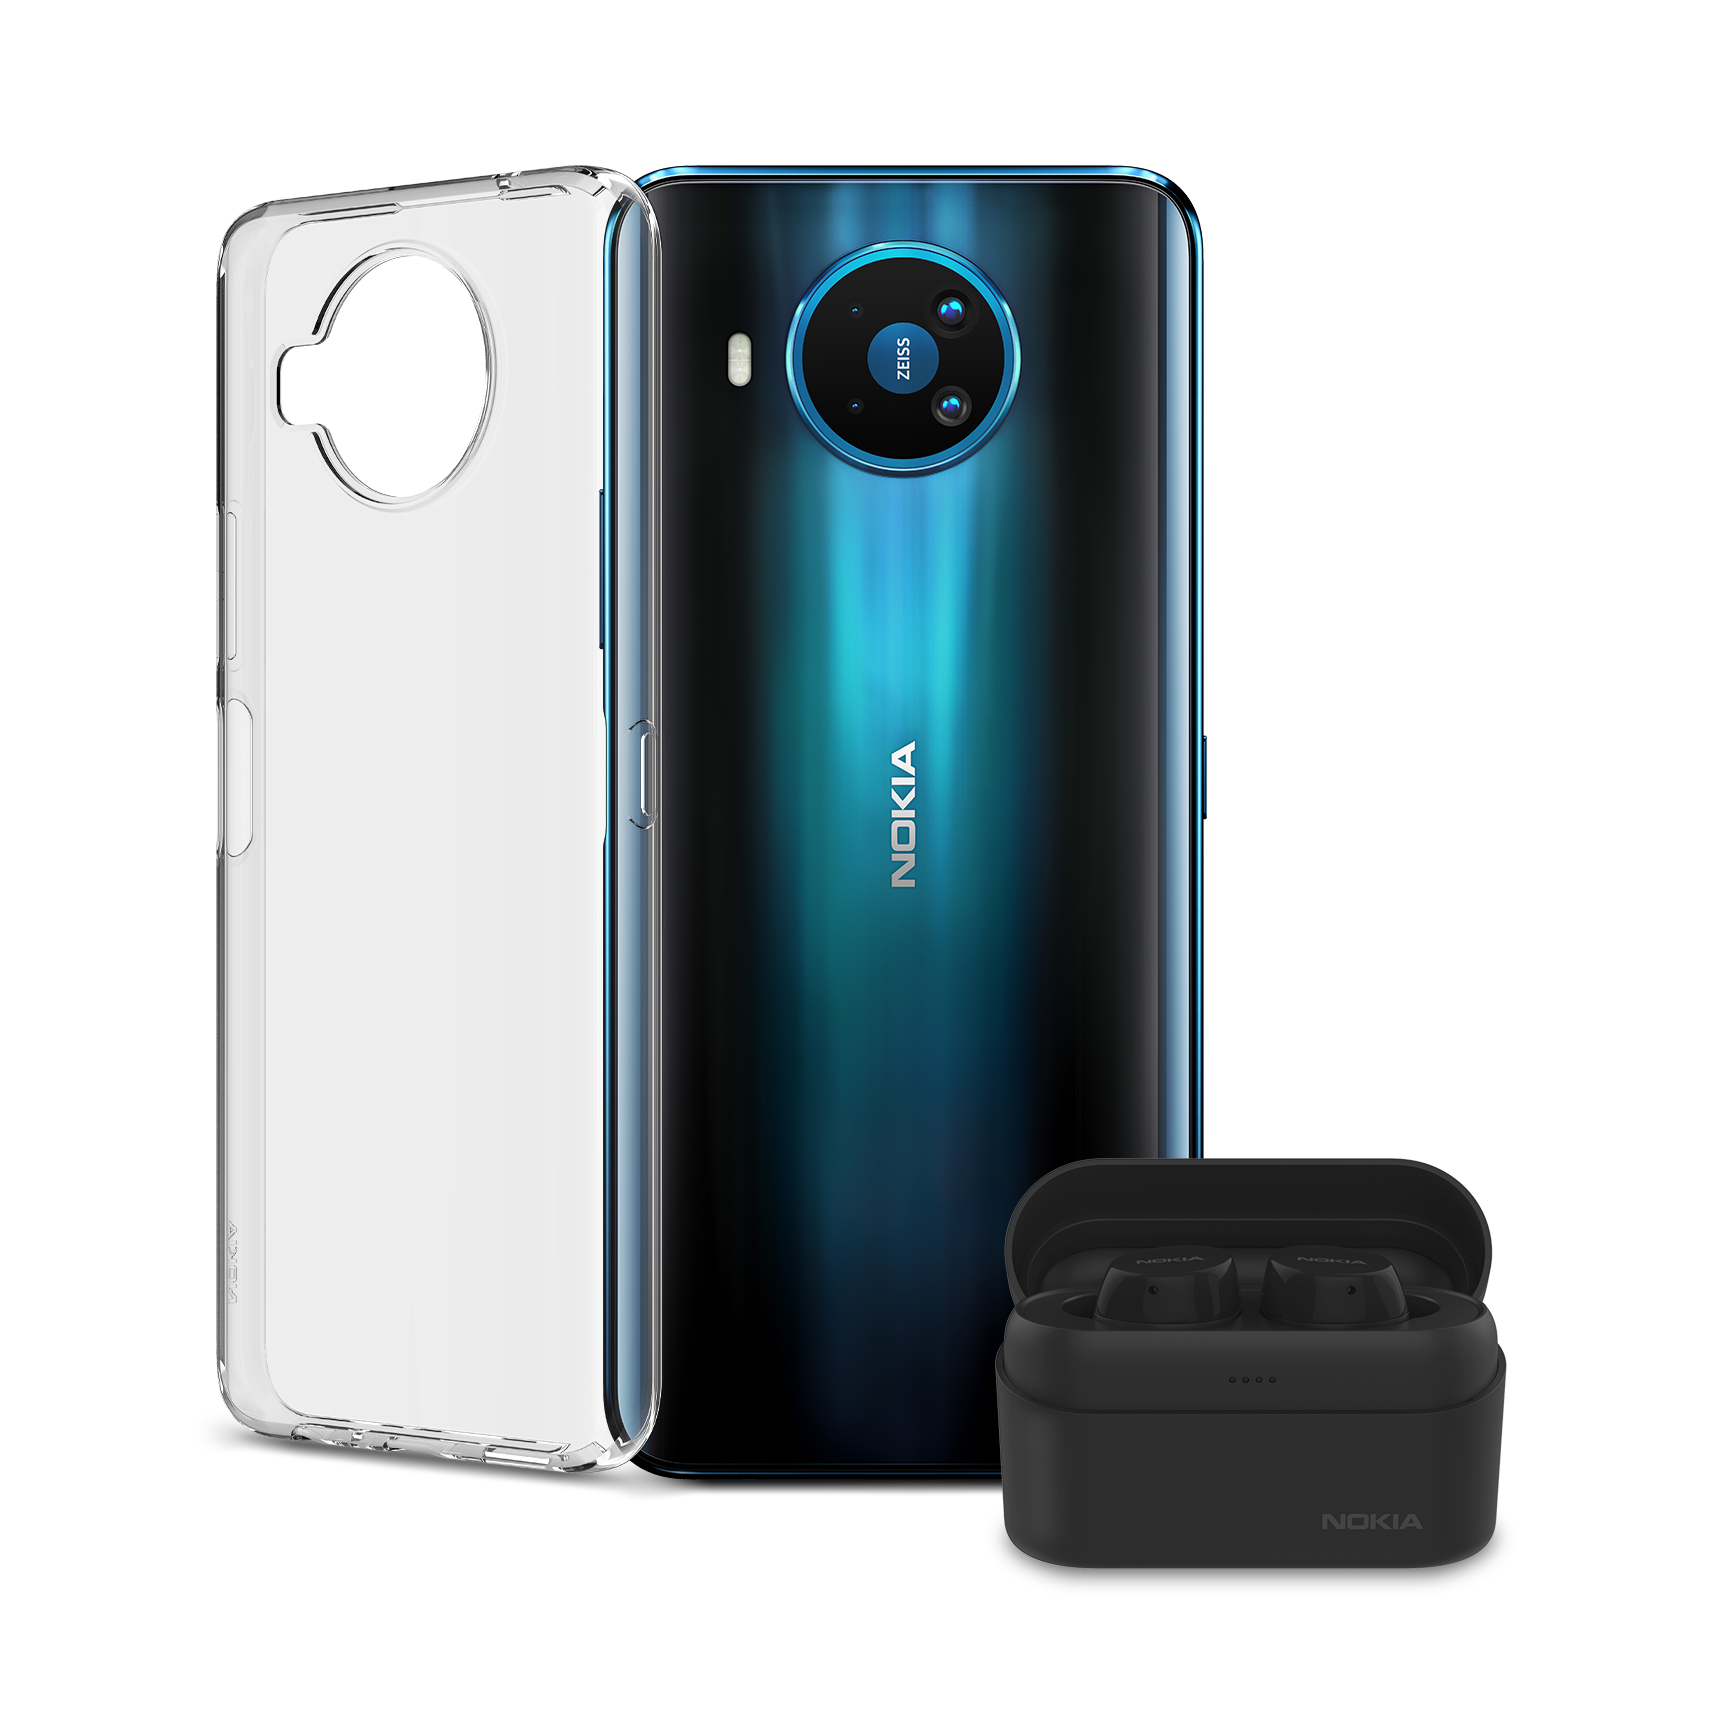 Clear Case and Nokia Power Earbuds bundle